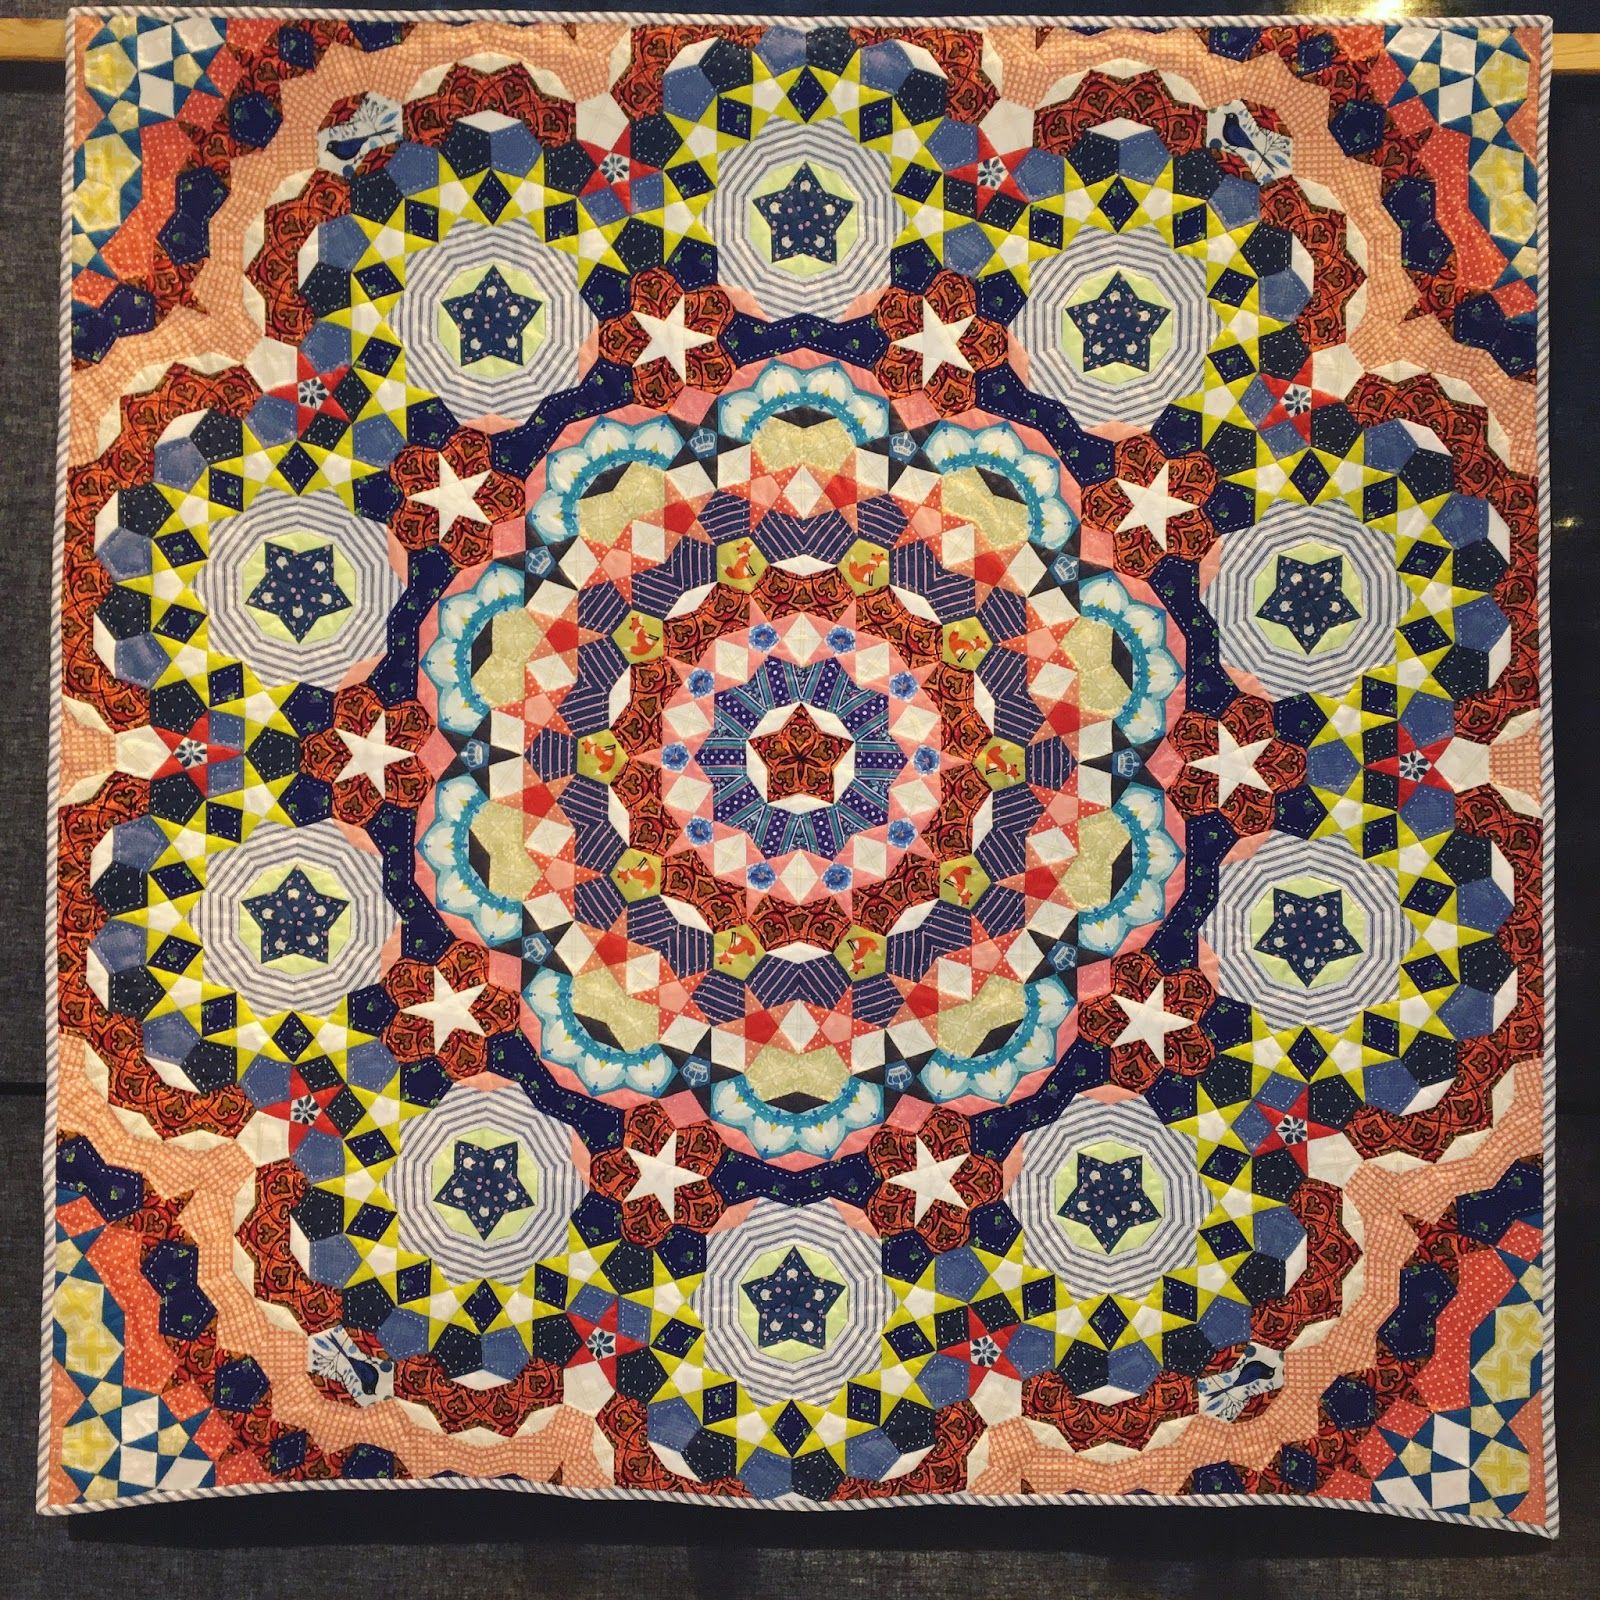 Carousel by Clare O'Rourke. 2016 Festival of Quilts (UK). Photo by ... : uk quilting blogs - Adamdwight.com